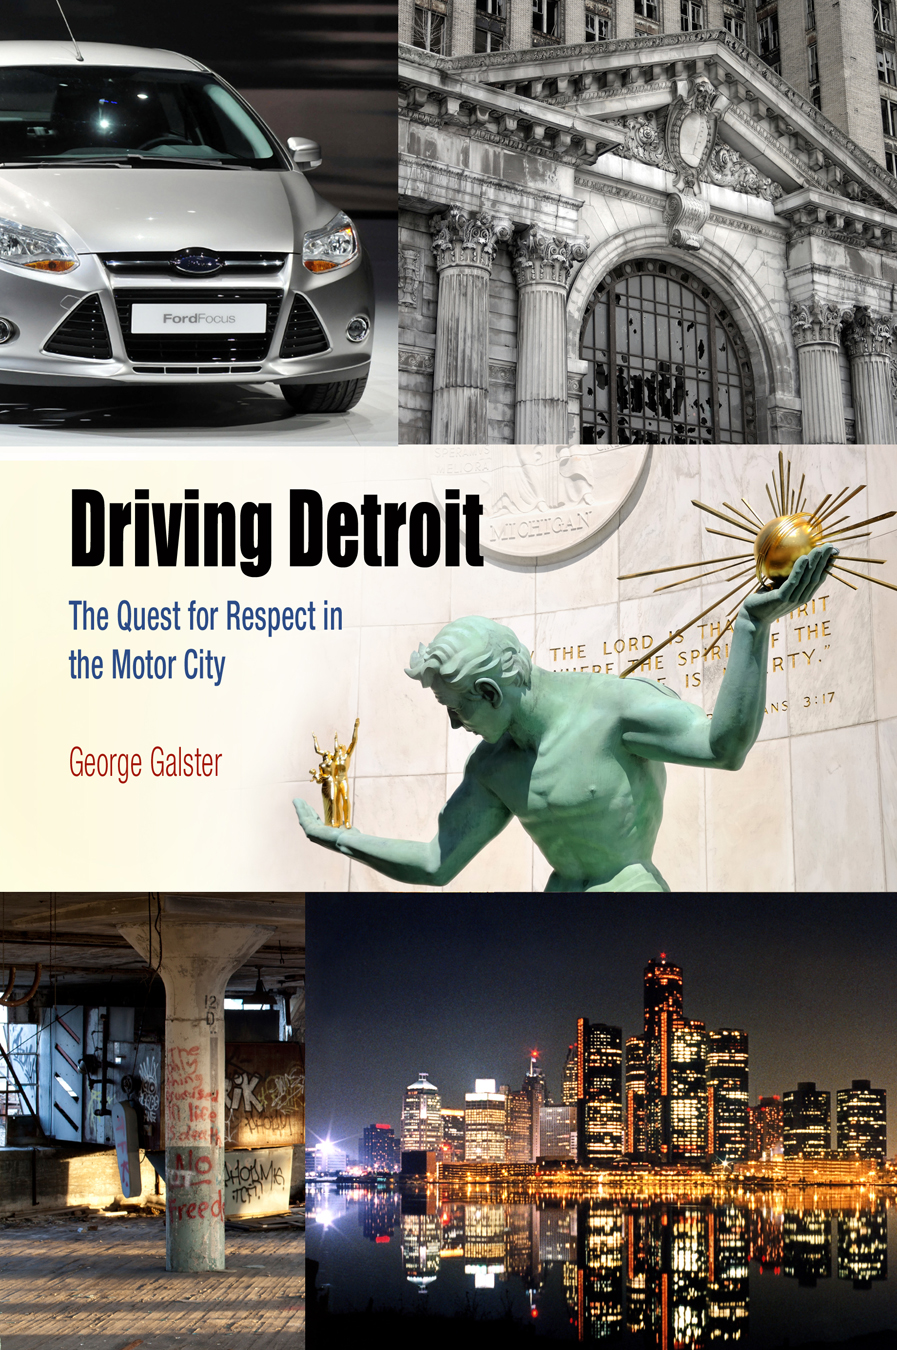 Driving Detroit The Quest for Respect in the Motor City